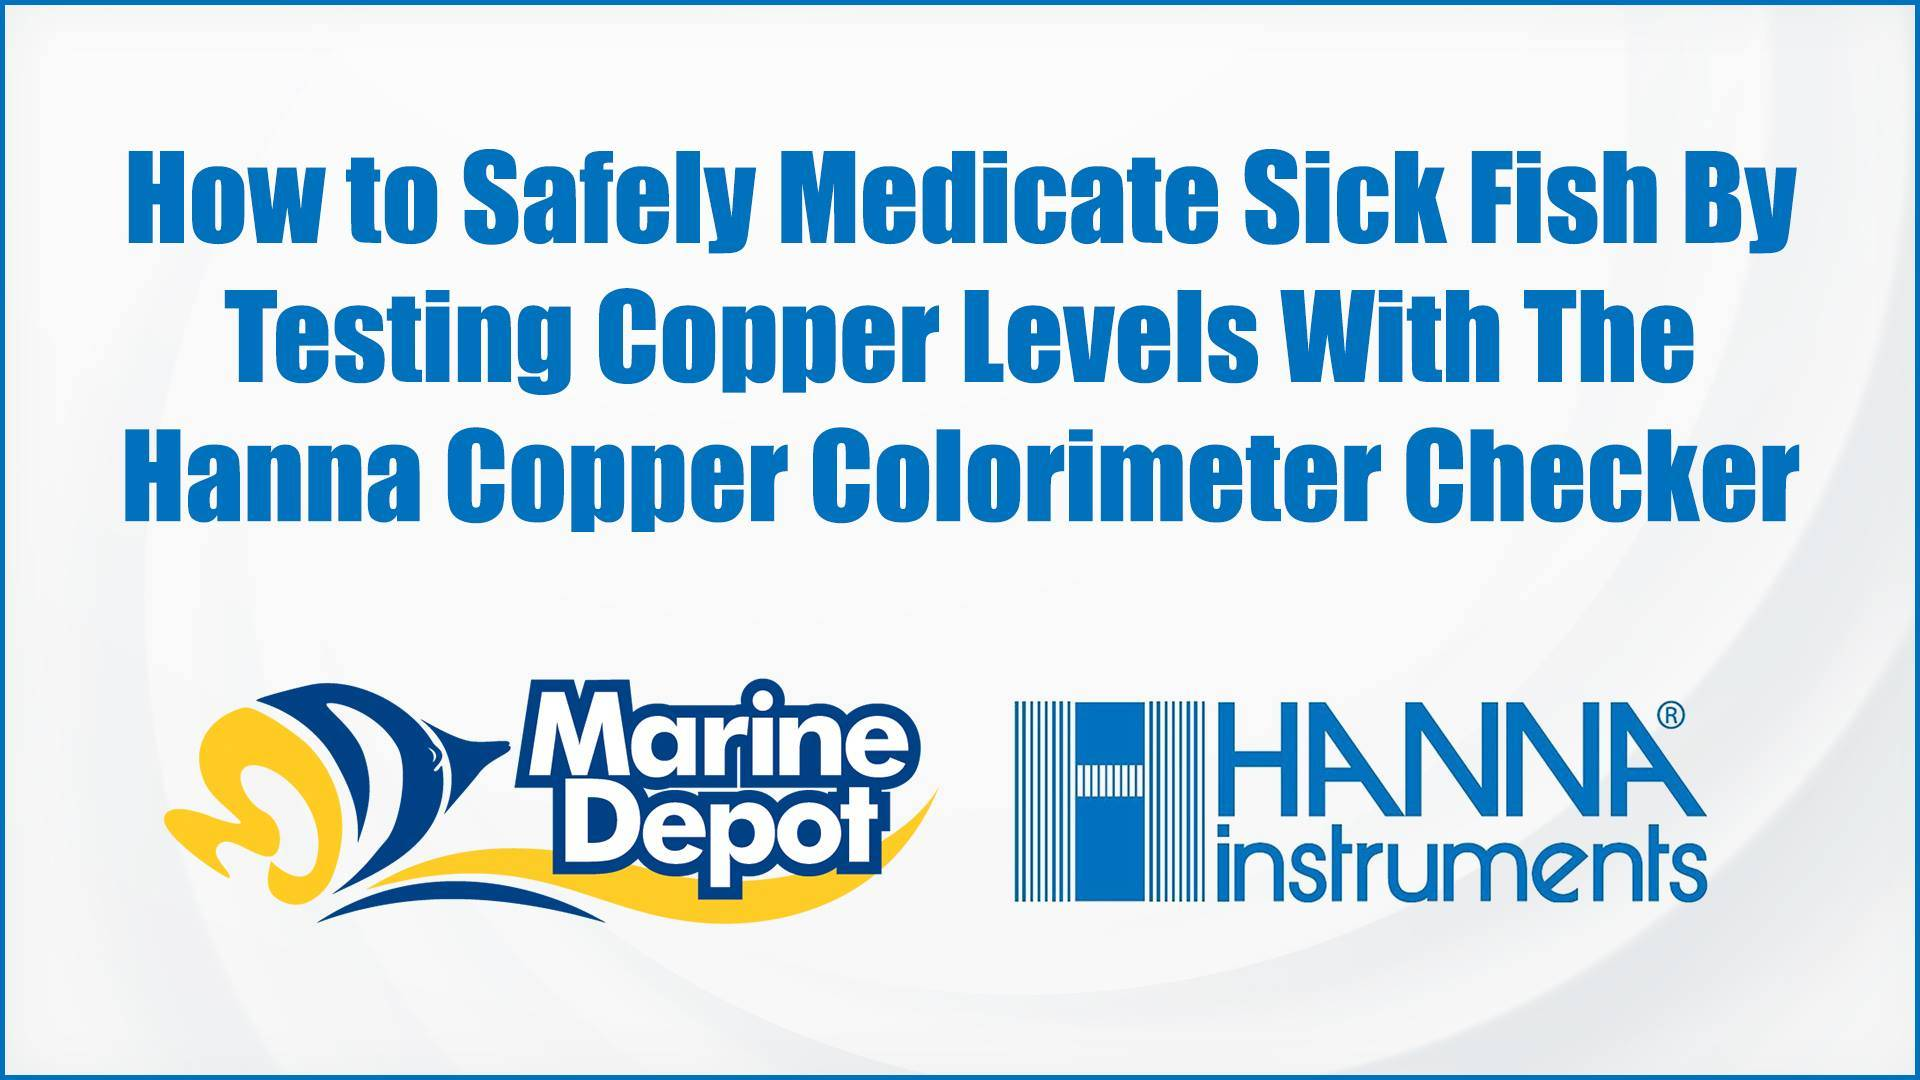 How to Safely Medicate Sick Fish By Testing Copper Levels With The Hanna Copper Colorimeter Checker - Marine Depot Chats with Experts #1